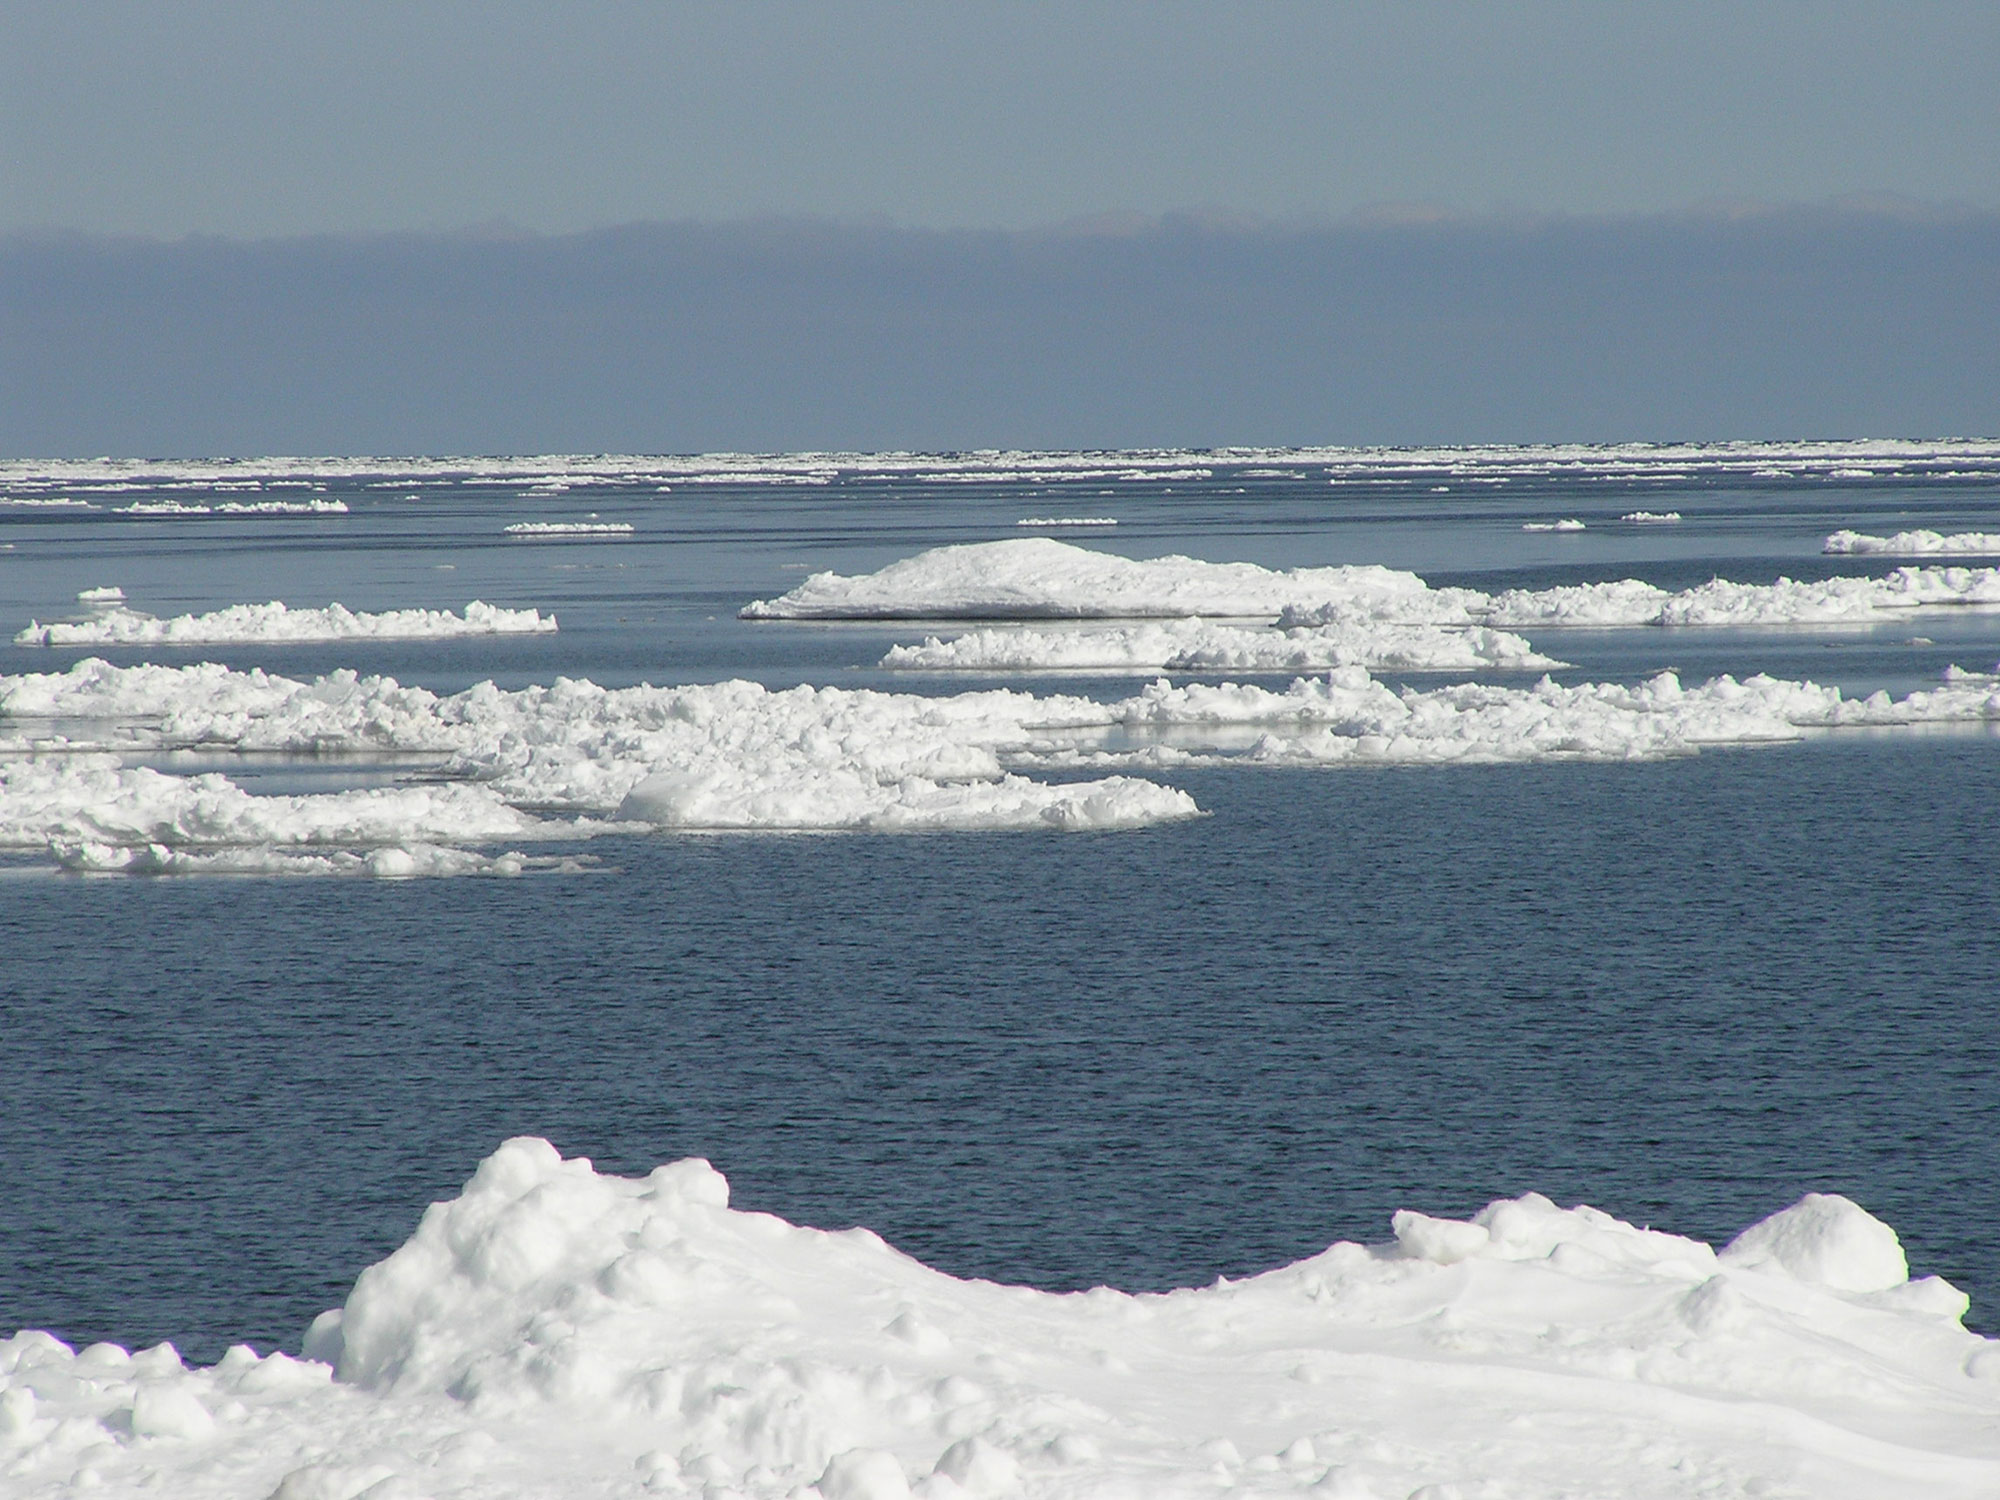 Lake Superior in March